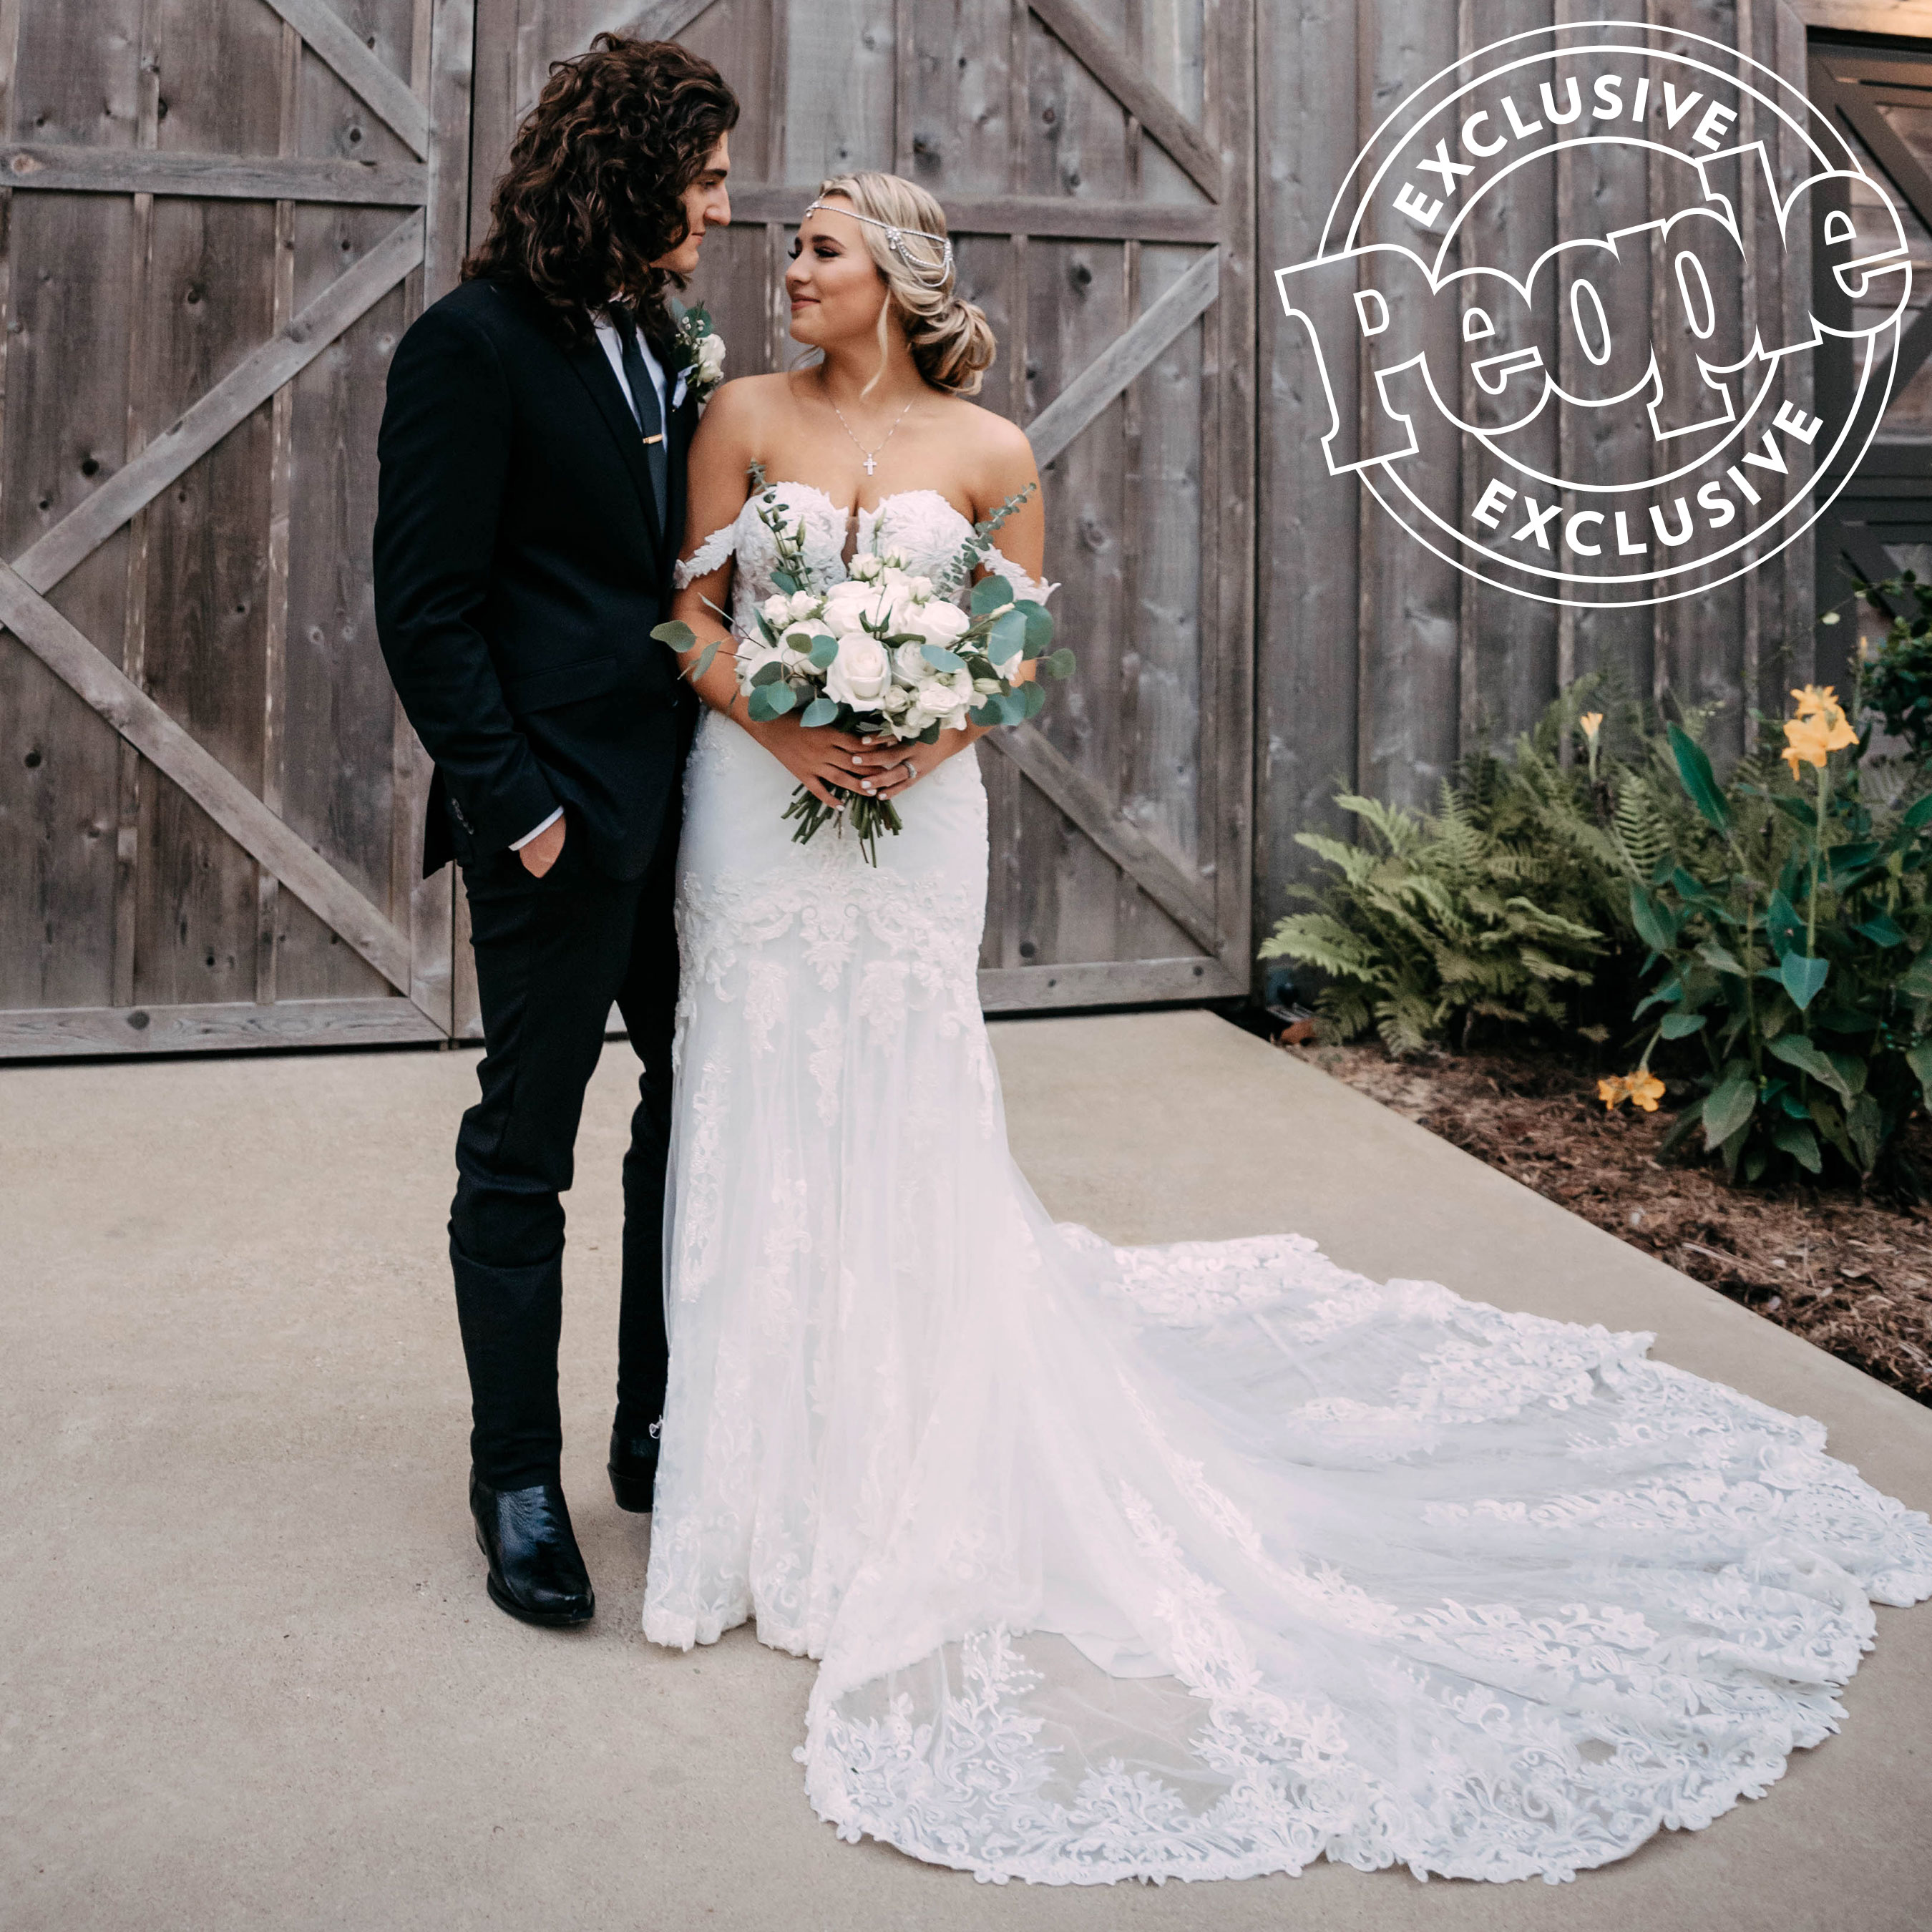 CADE FOEHNER AND GABBY BARRETT ON THEIR WEDDING DAY AT UNION SPRINGS WEDDING AND EVENT VENUE - GARRISON, TX - OCTOBER 5, 2019 - PHOTO CREDIT: PEOPLE.COM | LILLY WELCH